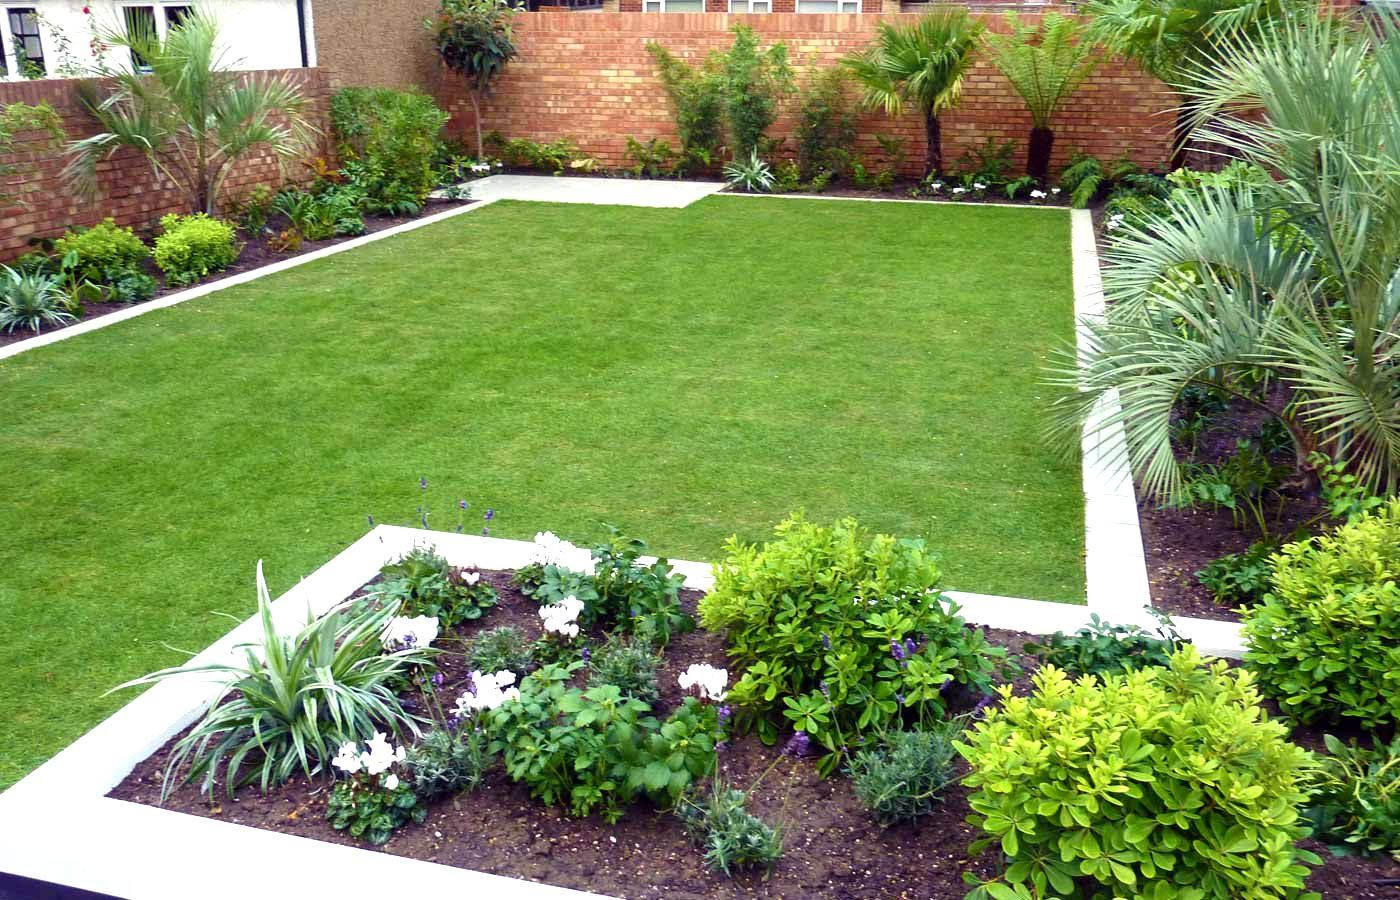 Simple garden designs no fret small garden design for Simple backyard garden ideas